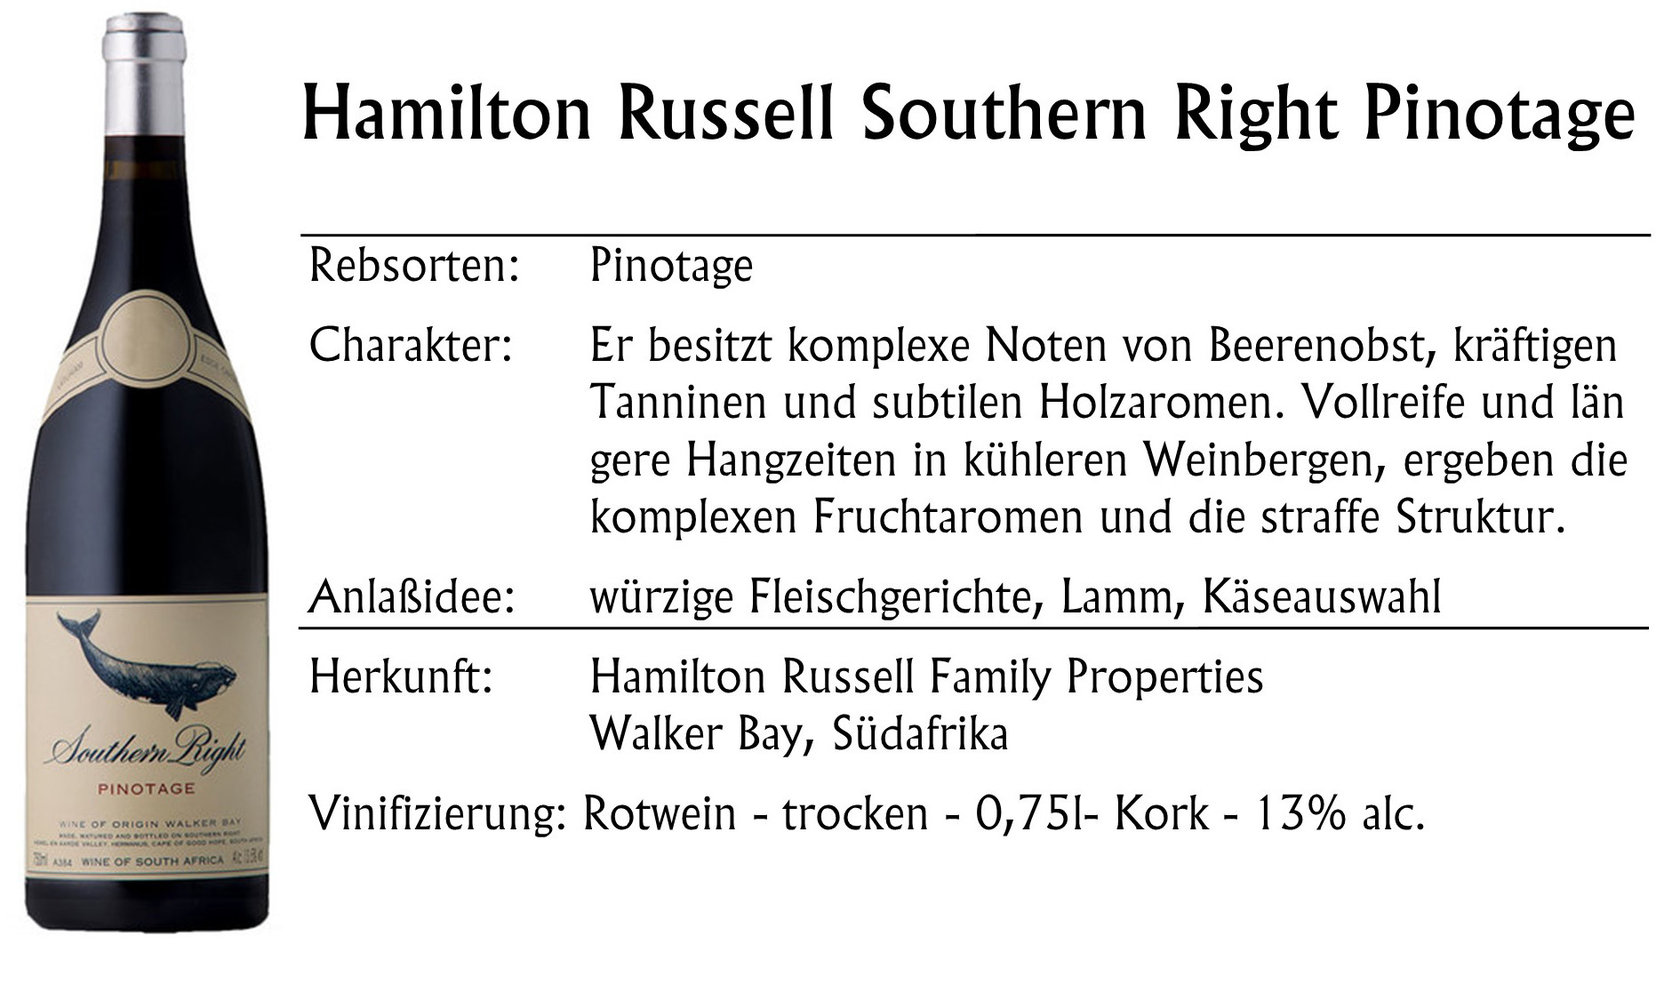 Hamilton Russell Southern Right Pinotage 2019